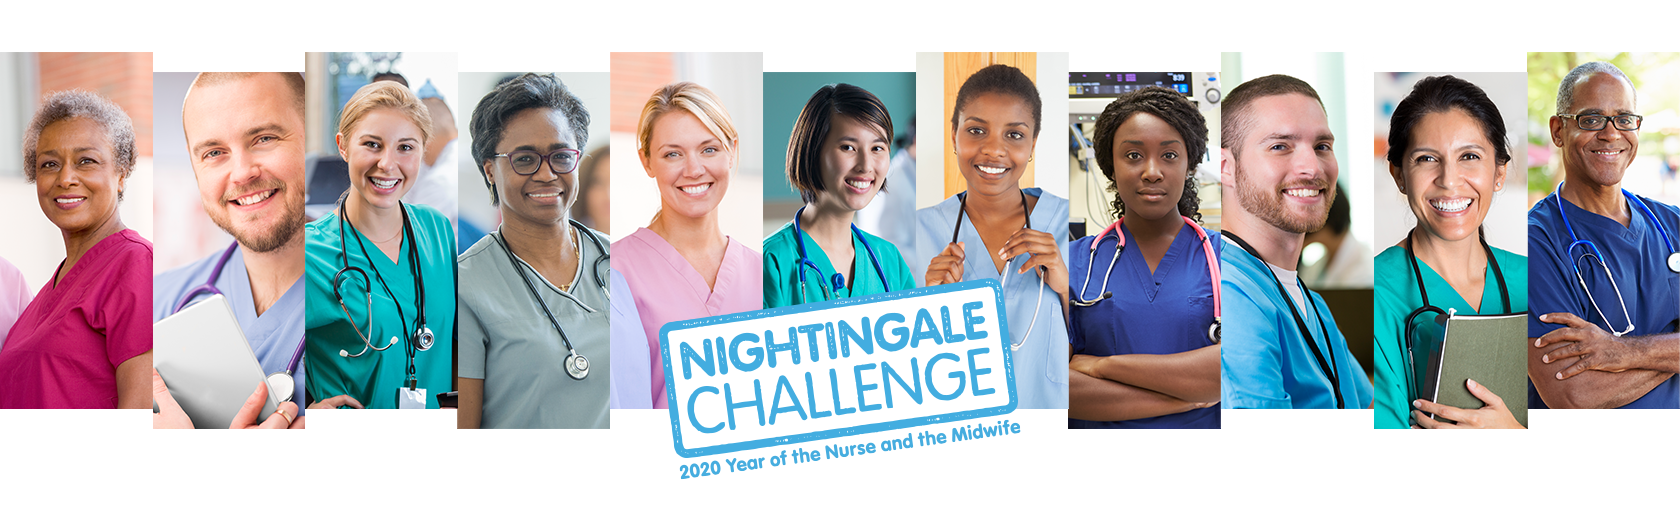 Nightingale Challenge - 2020 Year of the Nurse and the Midwife